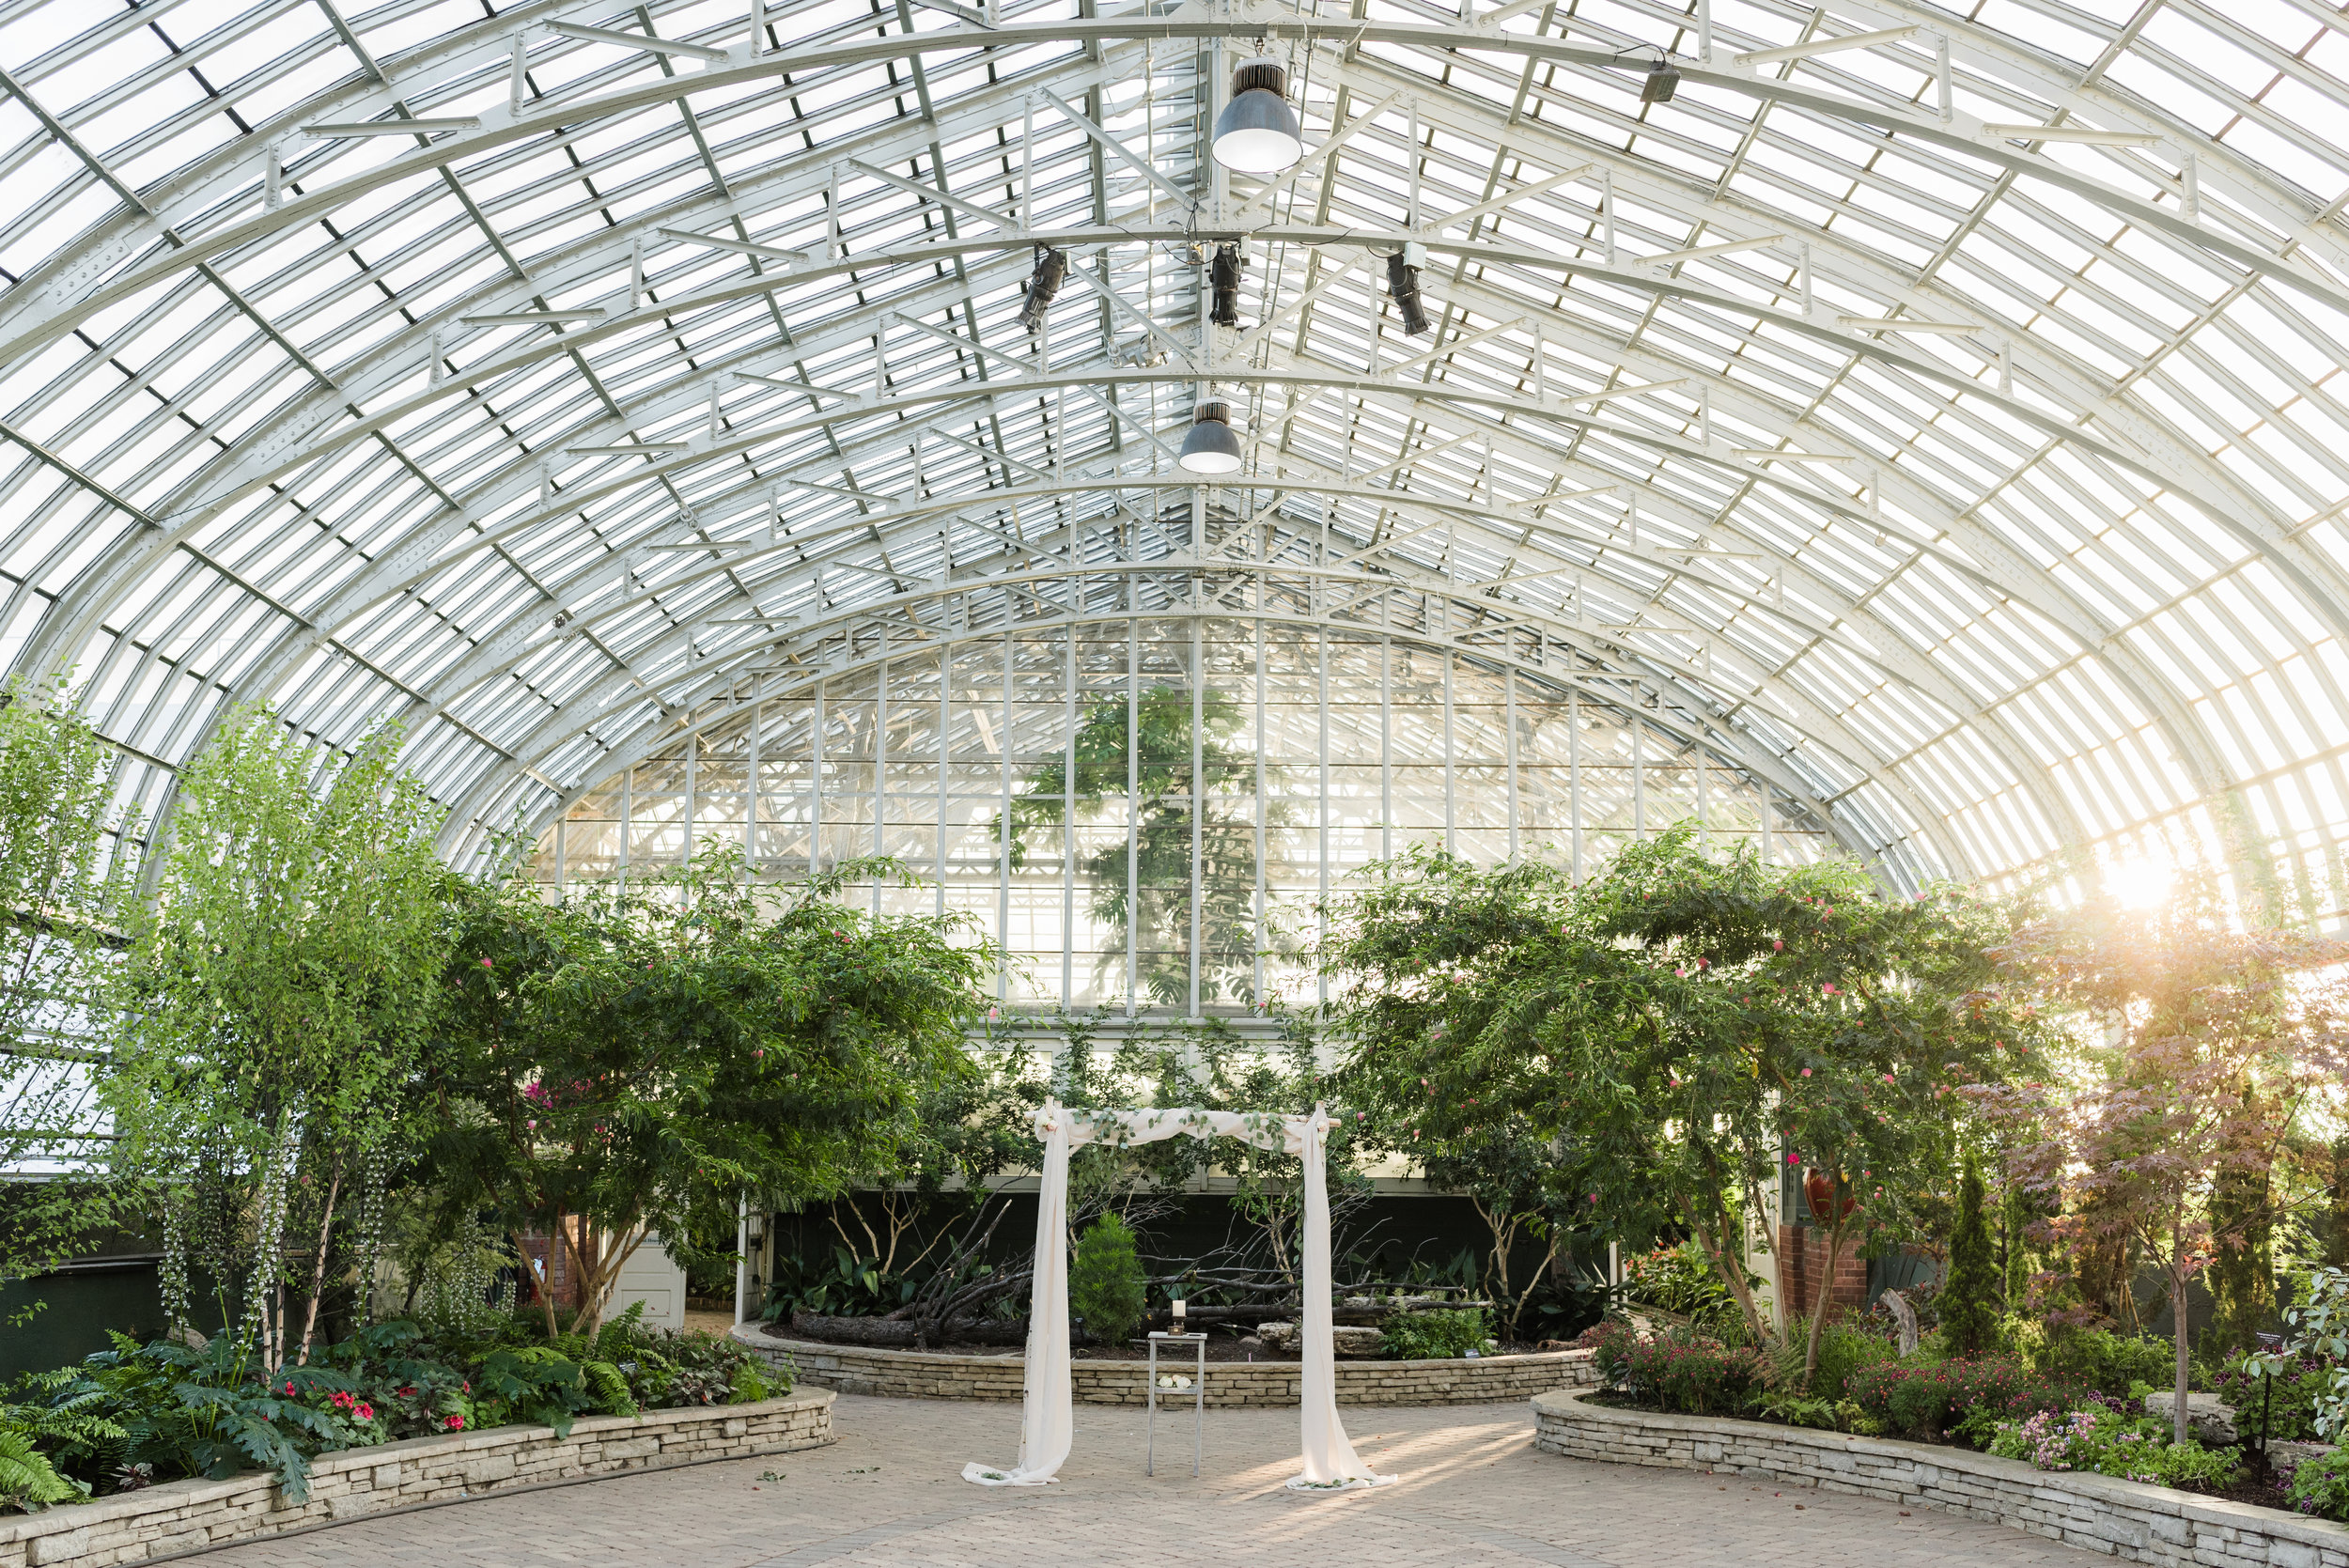 Garfield Park Conservatory Wedding.Garfield Park Conservatory Wedding Chicago Illinois Gavyn Taylor